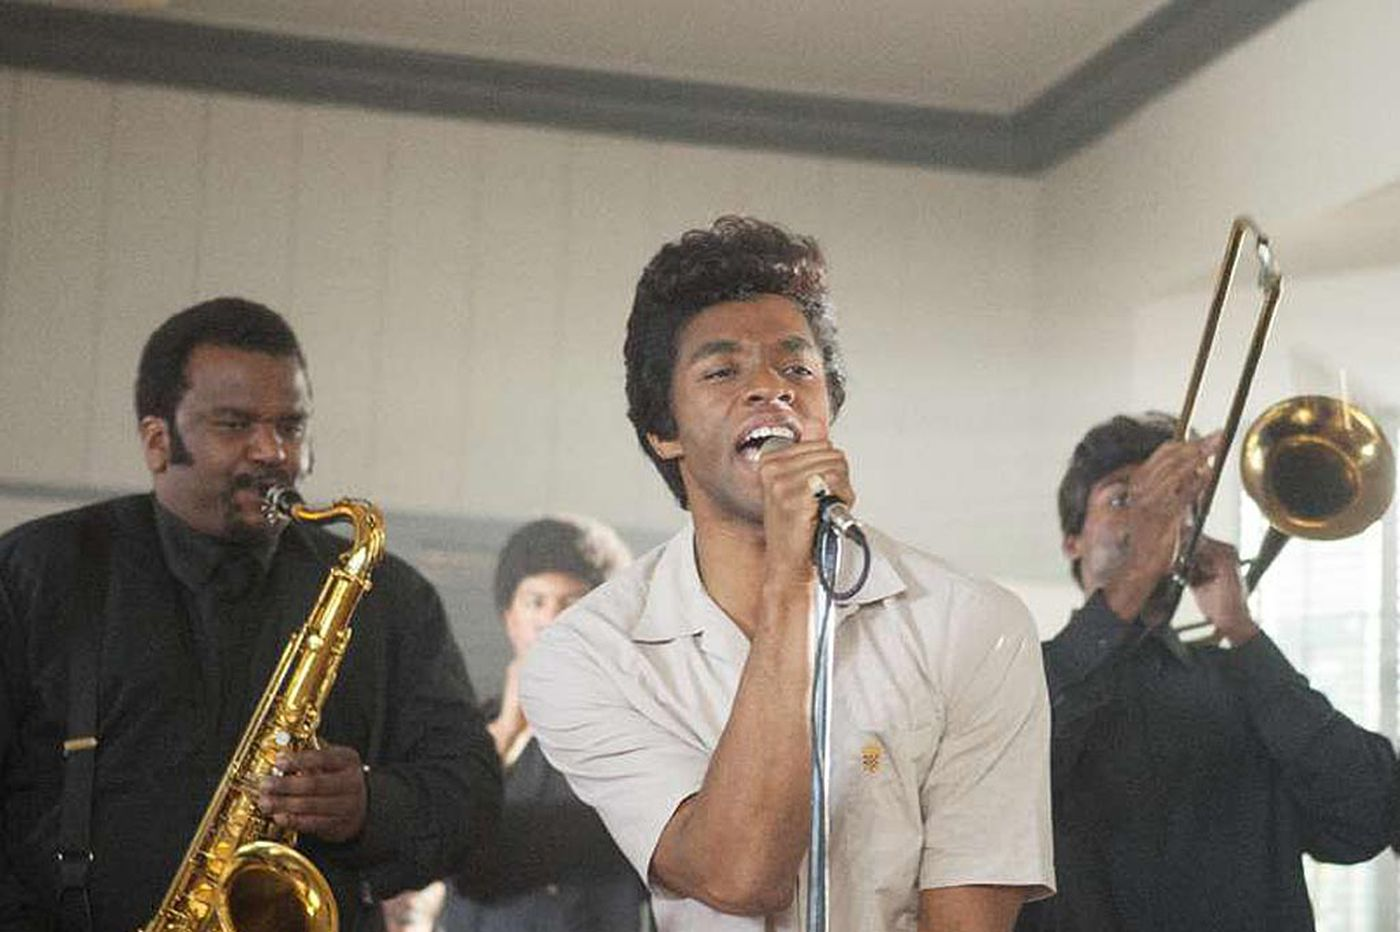 'Get On Up': Trying to capture the elusive Godfather of Soul